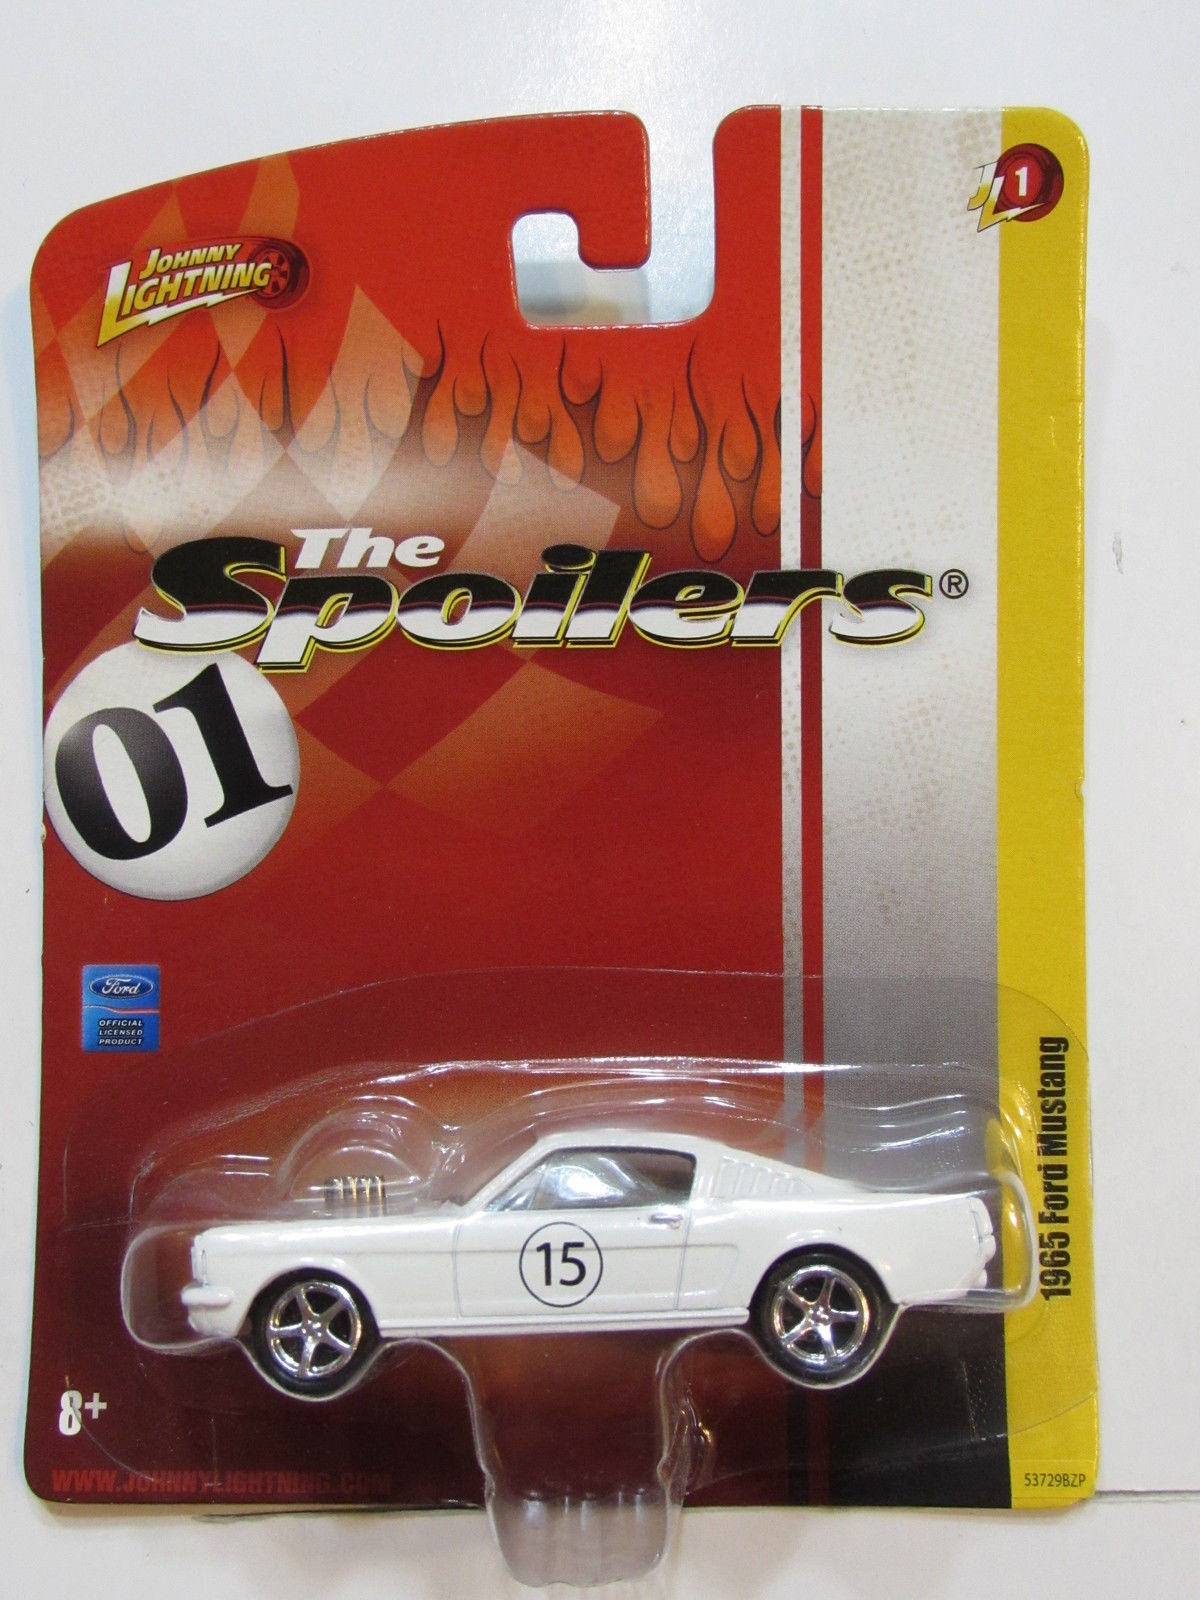 JOHNNY LIGHTNING THE SPOILERS 01 - 1965 FORD MUSTANG JL 1